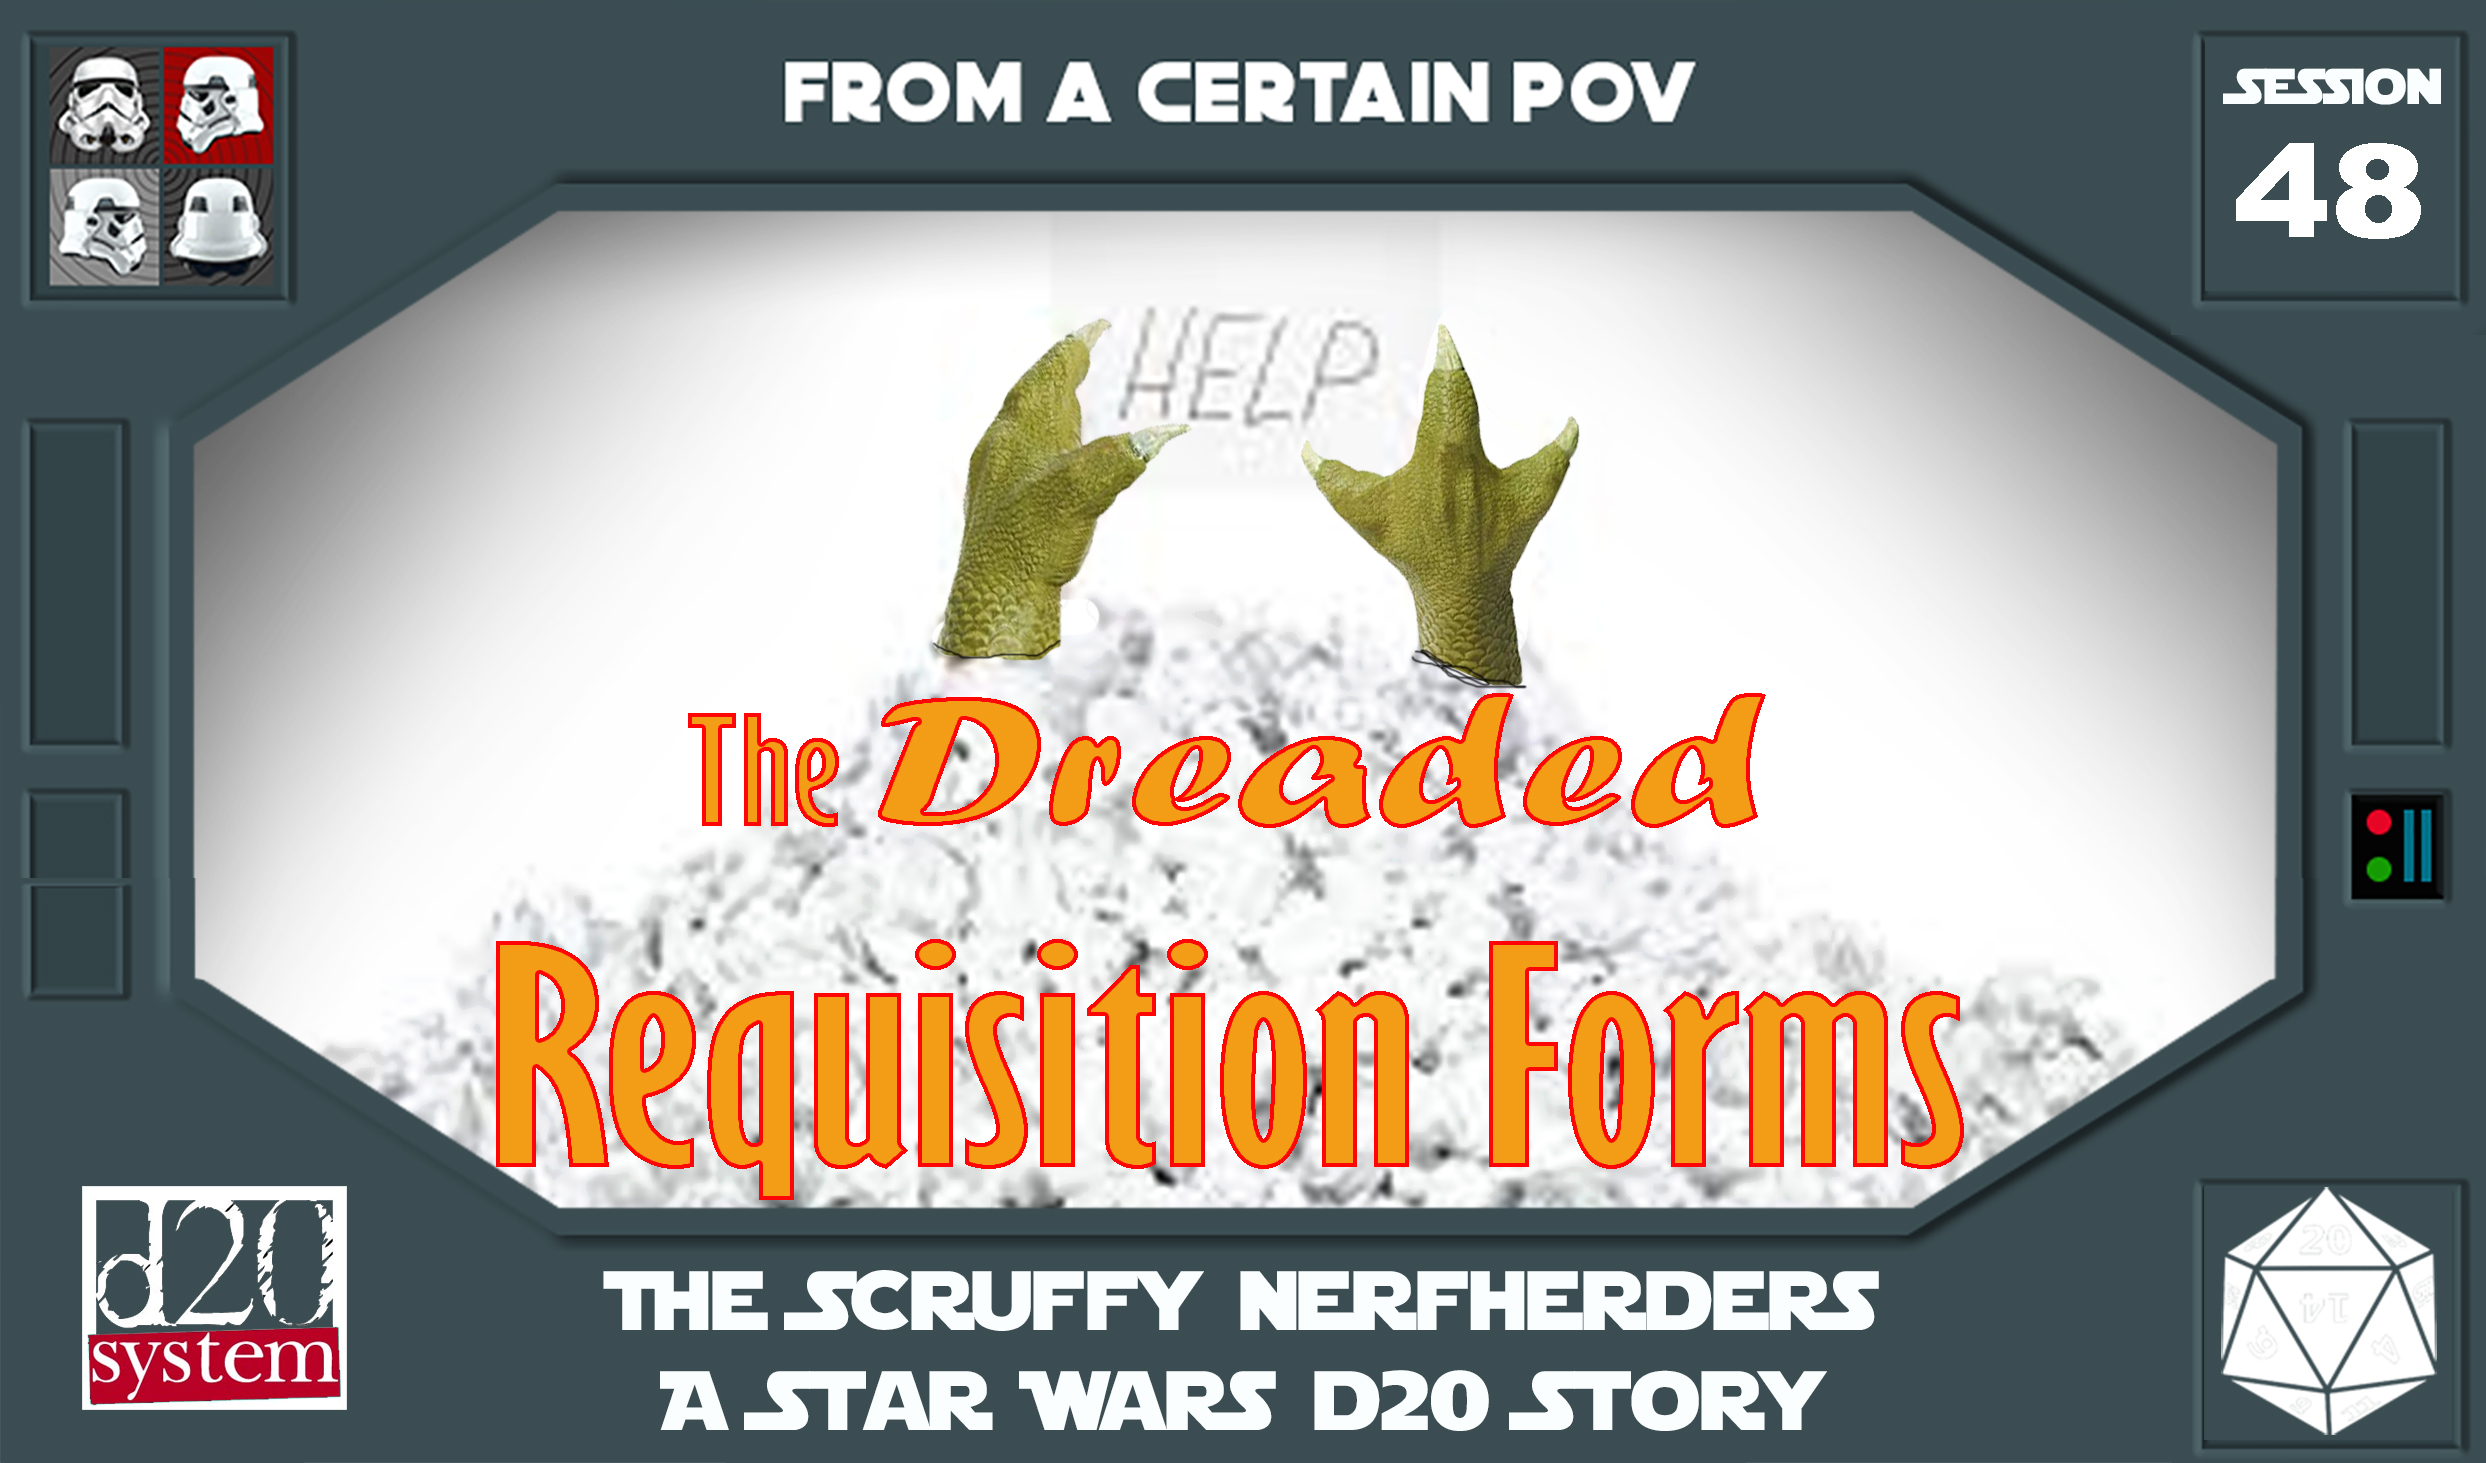 48 - The Dreaded Requisition Forms.jpg